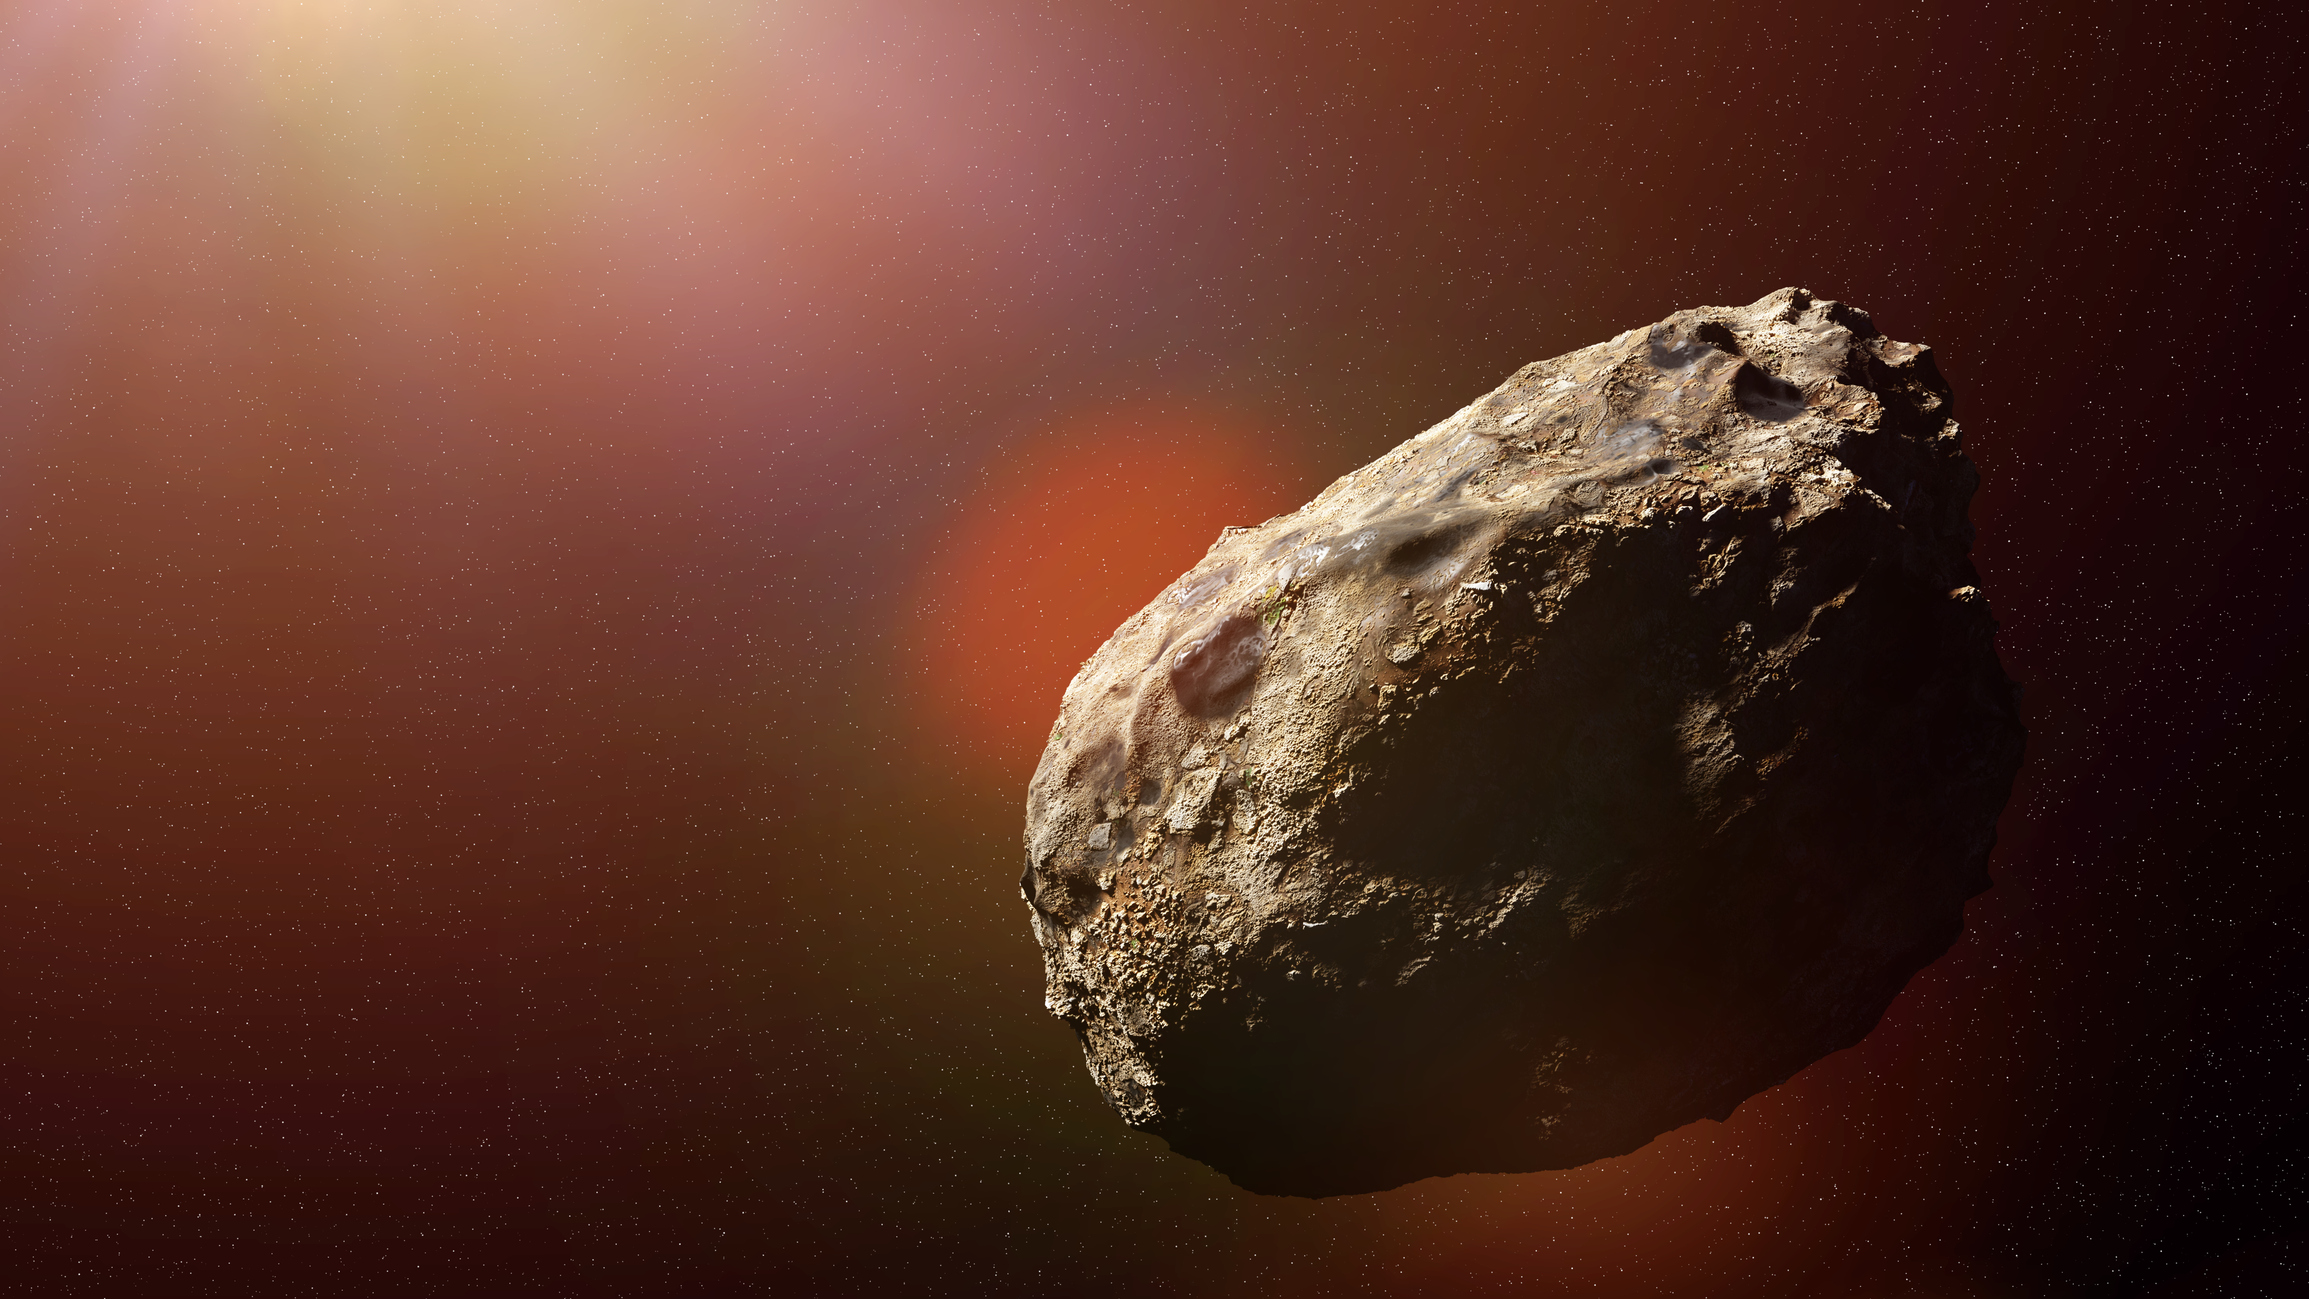 The space rock, estimated to measure up to 1,345 feet in diameter, is set to pass Earth on January 17.